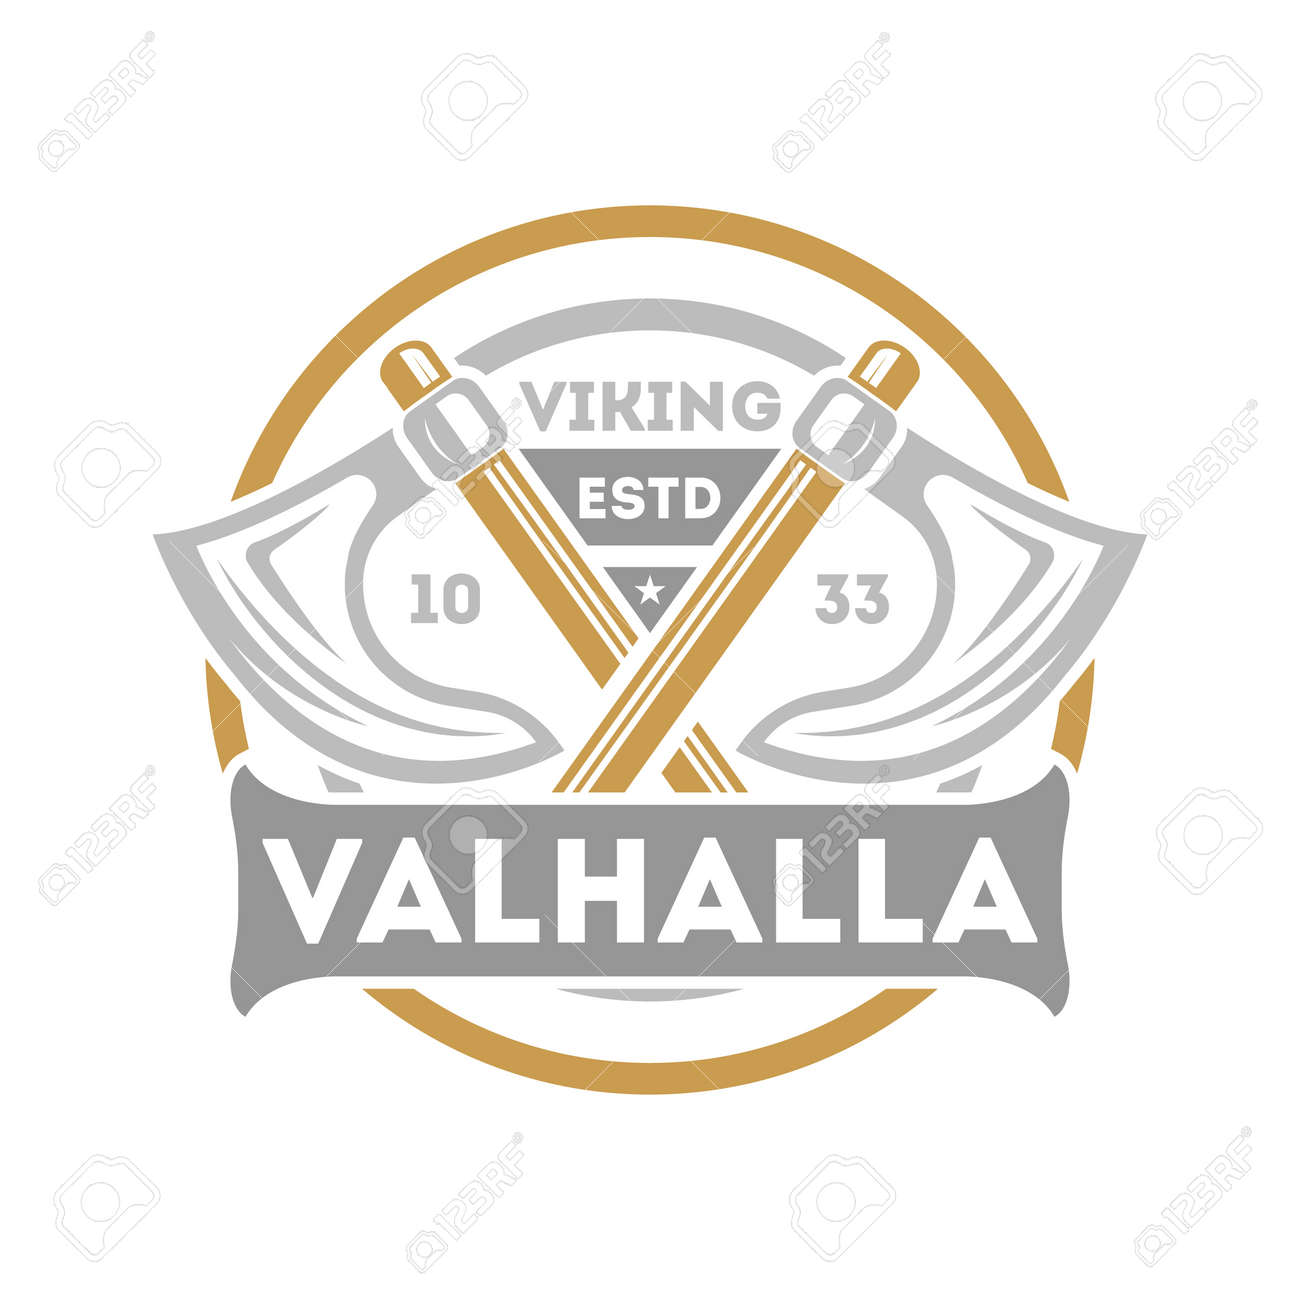 Viking valhalla isolated label with crossed ax. Scandinavian viking warrior badge, medieval barbarian emblem, nordic culture vector illustration. - 81373010